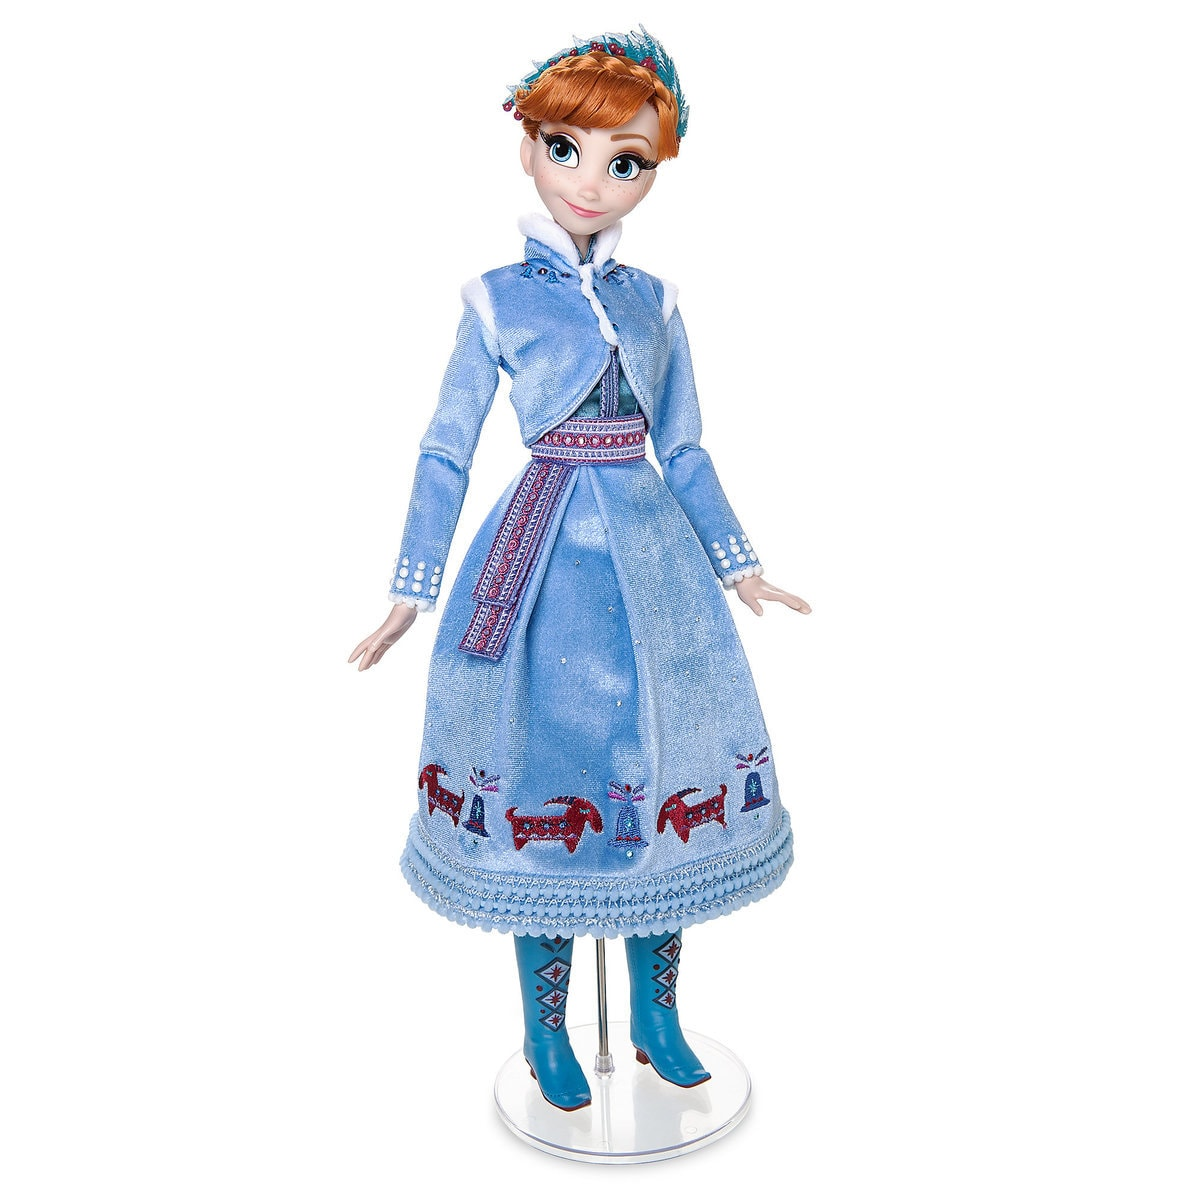 a222c9587a Product Image of Anna Doll - Olaf's Frozen Adventure - Limited Edition # 1